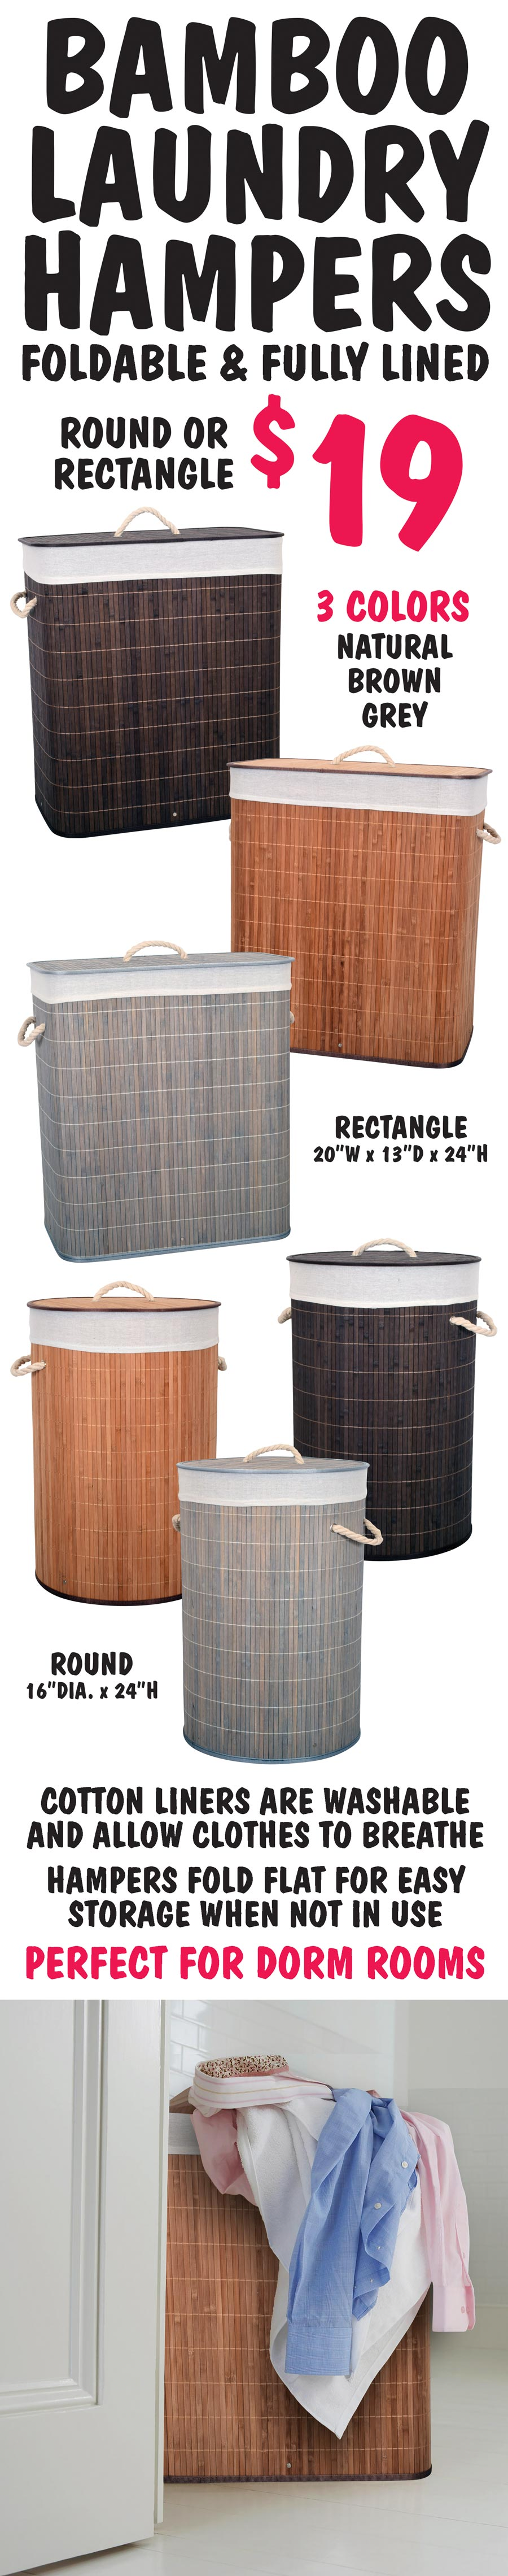 Bamboo Laundry Hampers - $19 - Round and Rectangle in 3 Colors